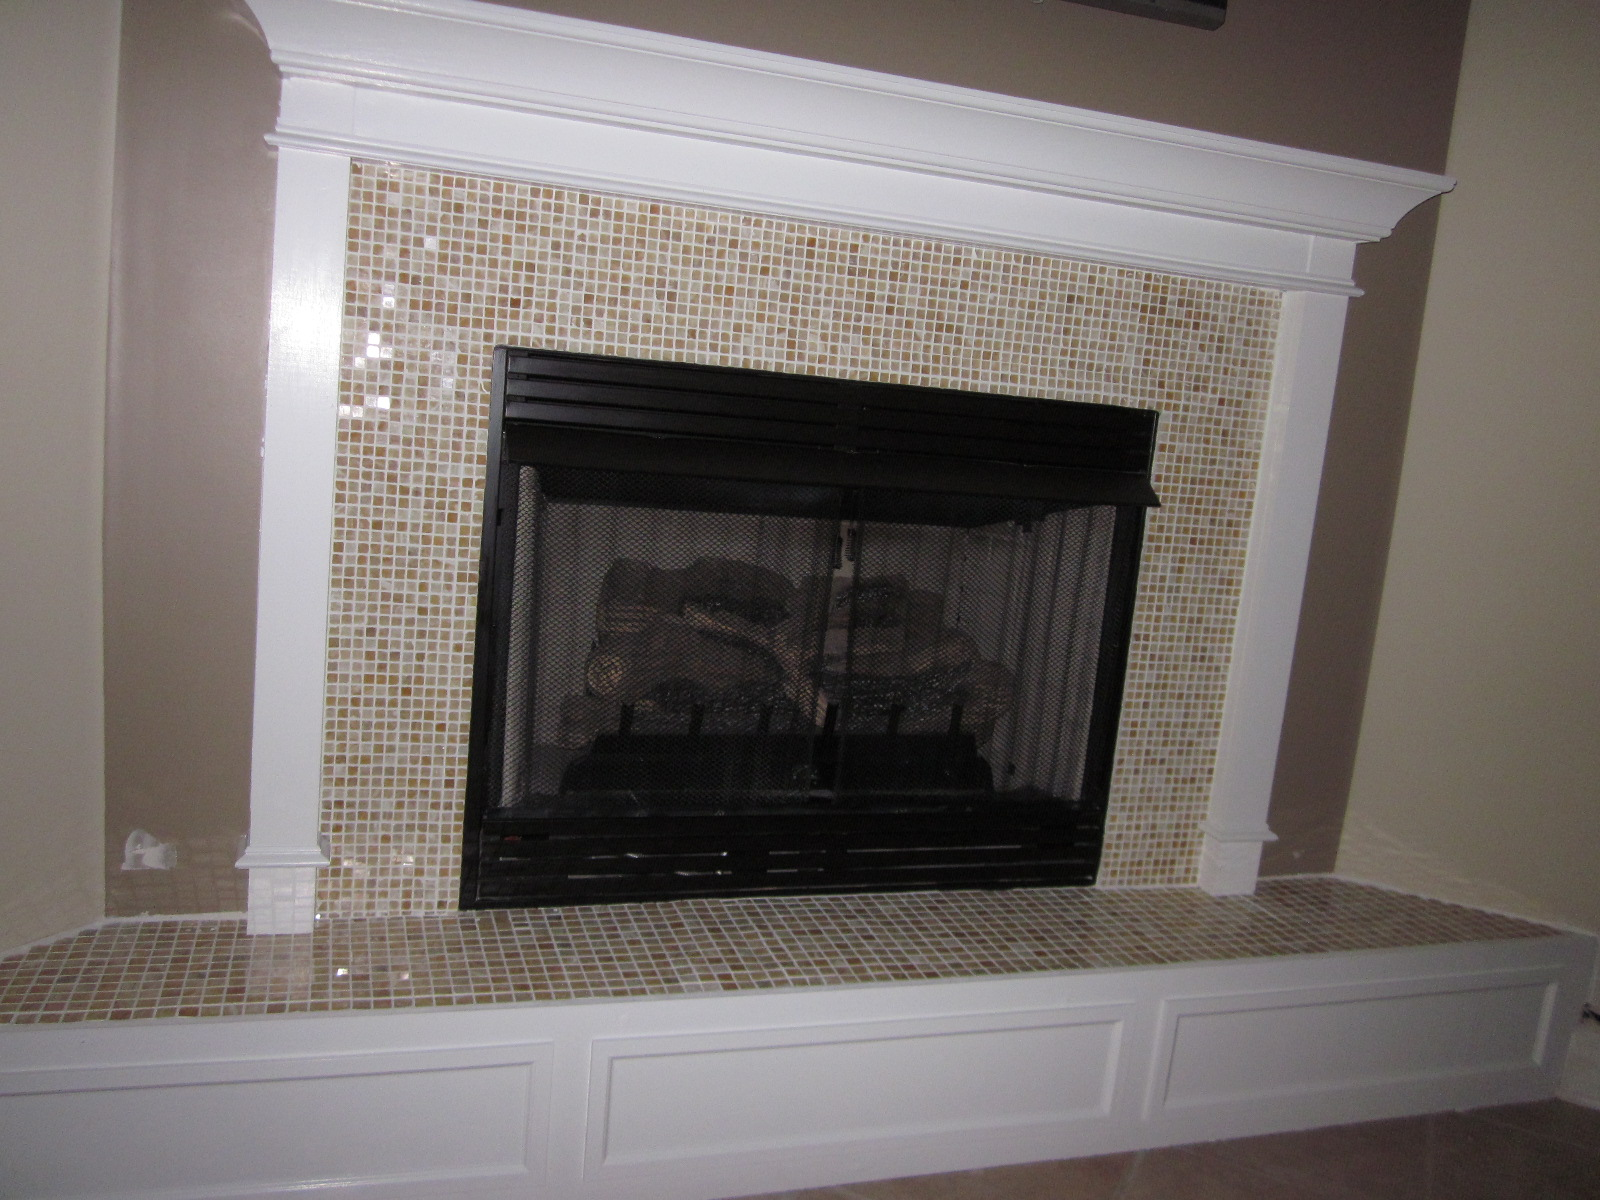 Painting ceramic tile fireplace surround fireplace mini facelift ceramic tile fireplace surround by lipstick and a brad nailer are the only essentials dailygadgetfo Images